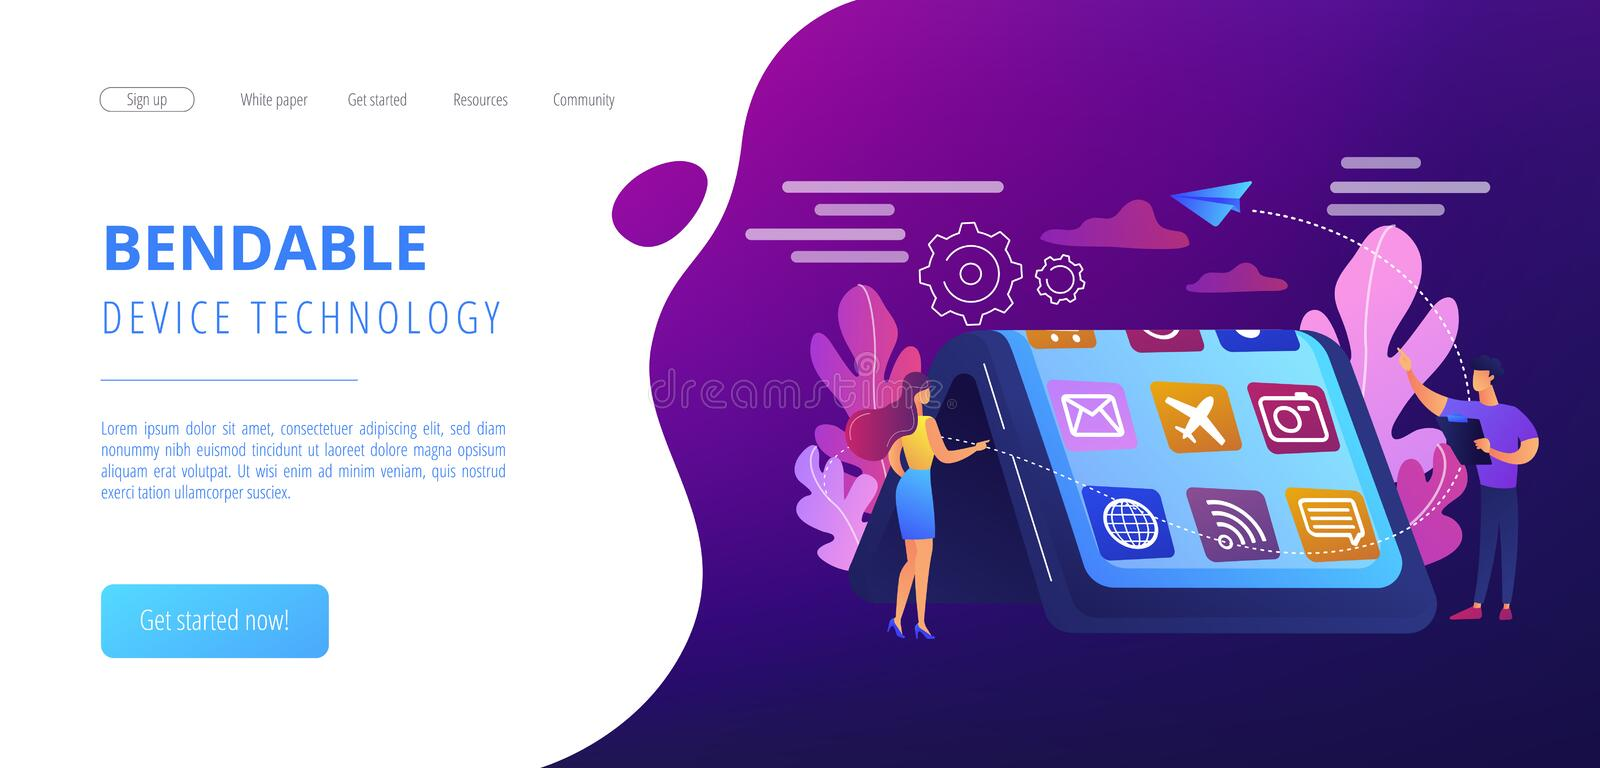 Bendable device technology concept landing page. Tiny people at big smartphone with flexible display. Bendable device technology, flexible display device, next royalty free illustration